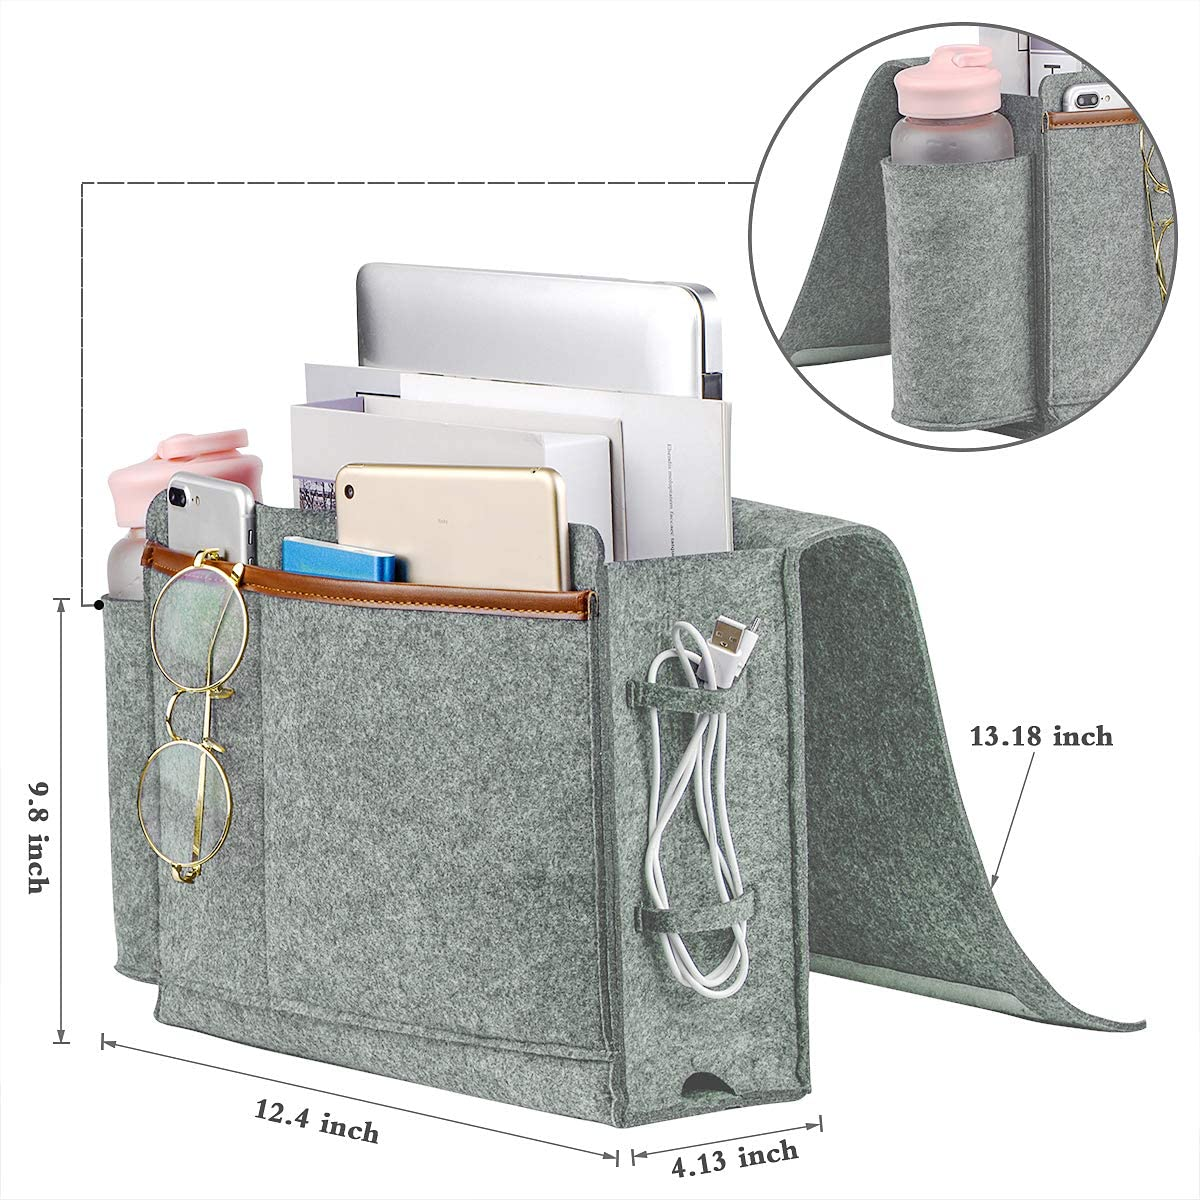 Bedside Caddy, Thick Sofa Storage Organizer, Table Cabinet Hanging Storage Organizer, Holder Bag for Laptop Book Phone Charger Bottle and other, Ideal for Dorm, Kid Bunk Bed, Sofa, Hospital Bed(Gray)